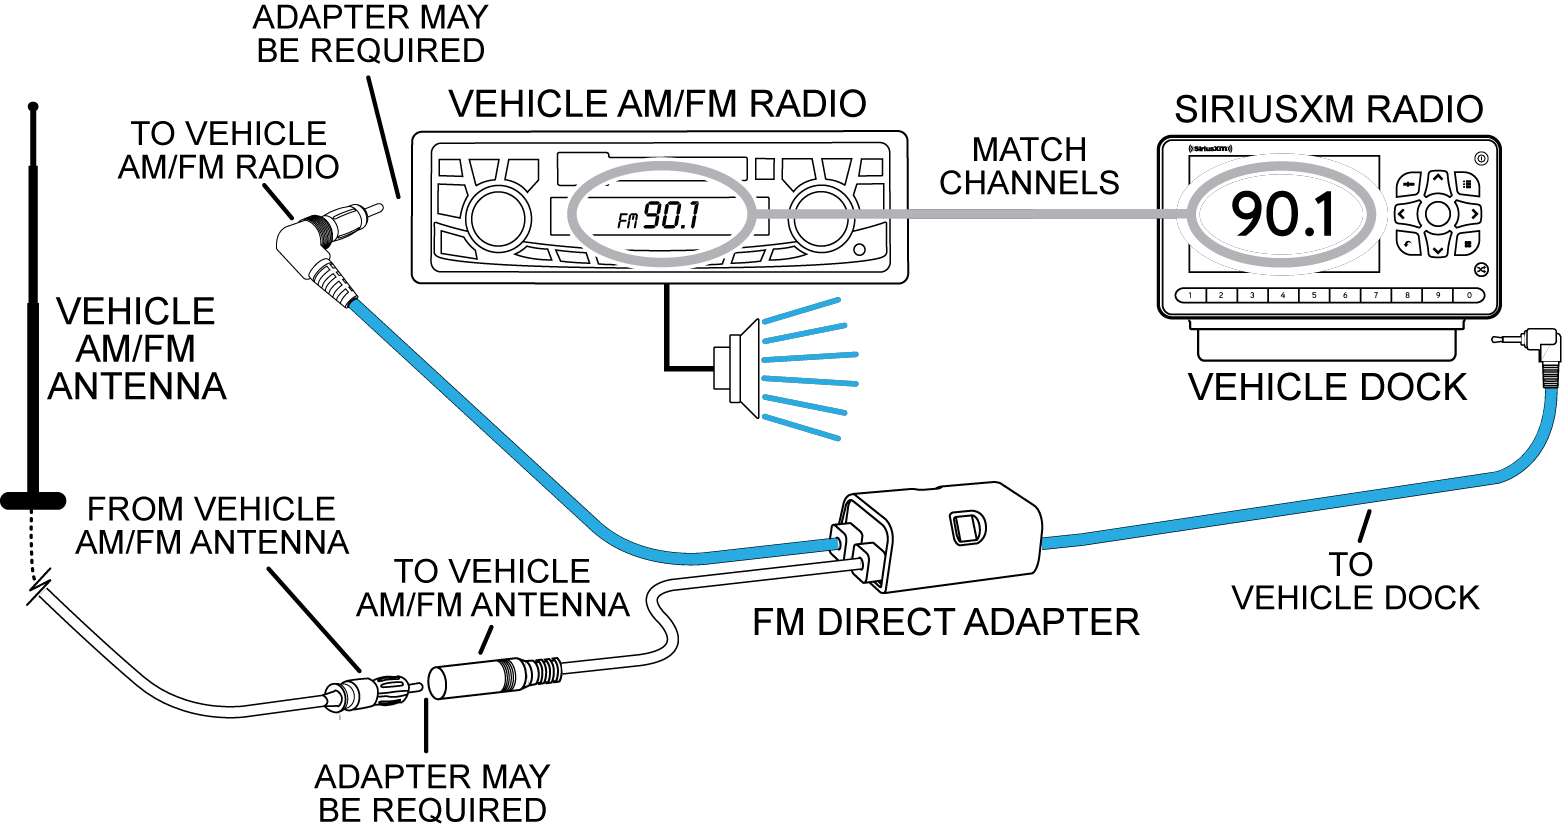 hight resolution of step 2 match the fm channel of your siriusxm radio with your vehicle s fm radio